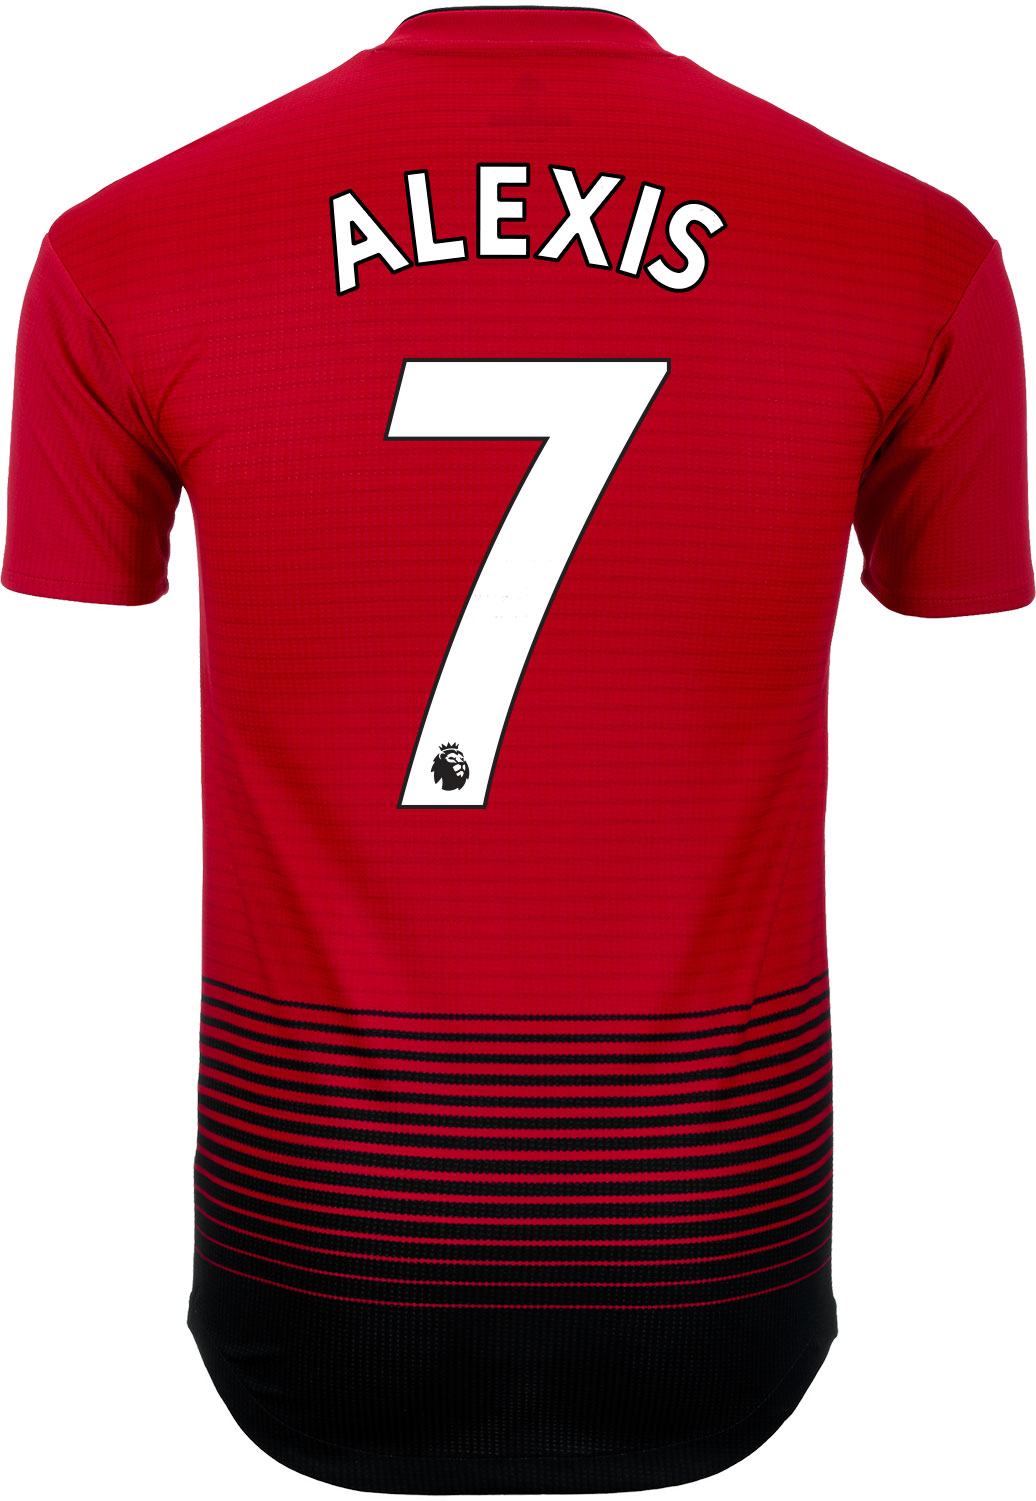 82779daafd0 adidas Alexis Sanchez Manchester United Home Authentic Jersey 2018 ...